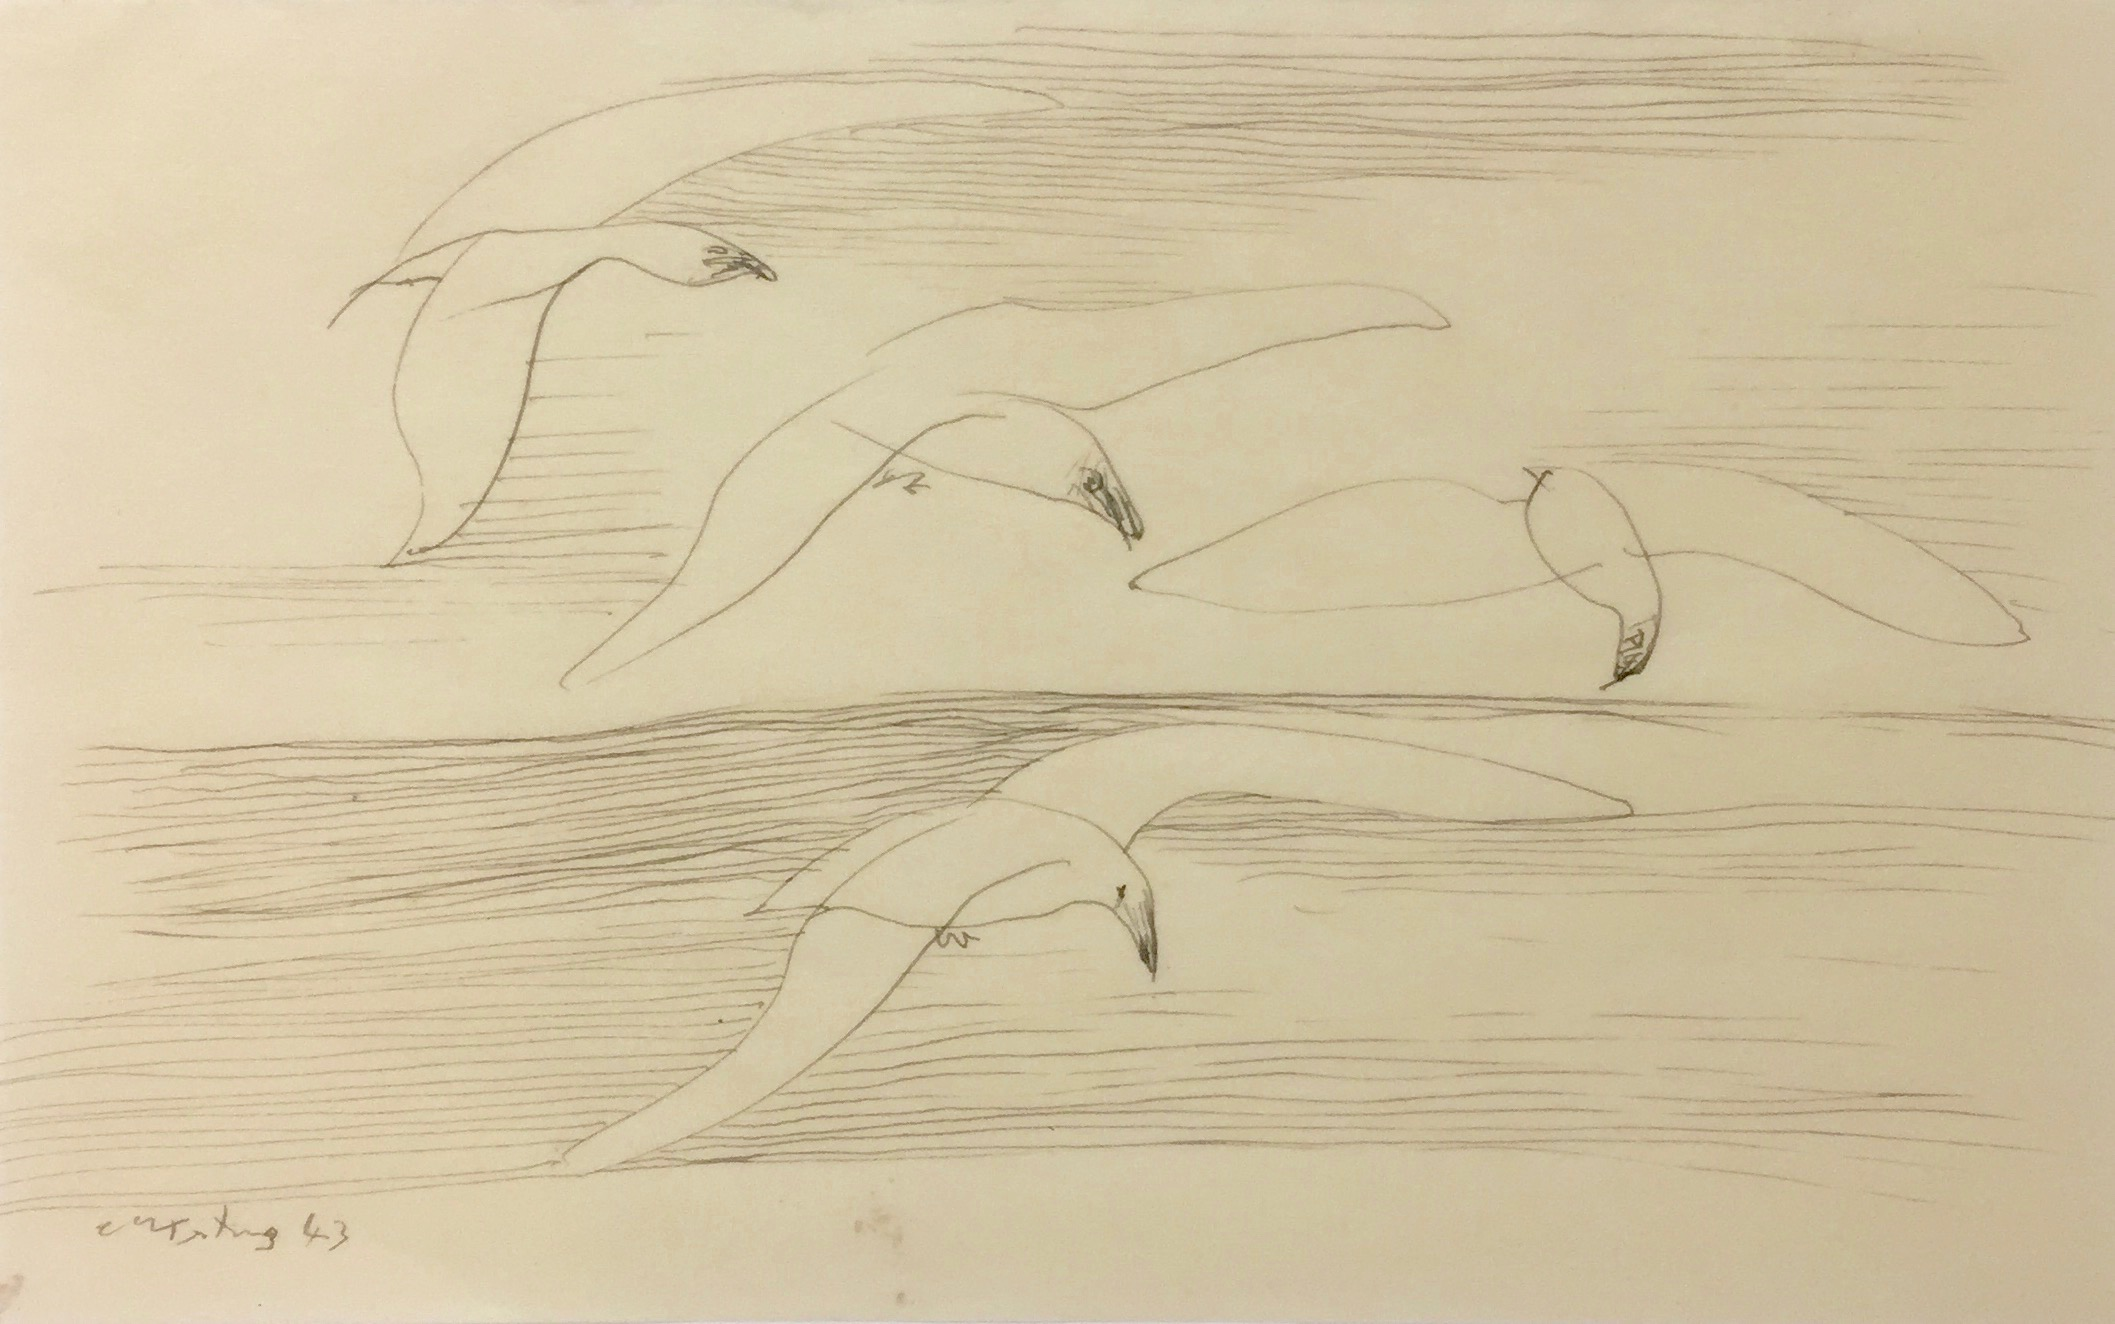 Edmund Kesting | Flying Seagulls | 1943 | ink | signed and dated | 11.5 x 20